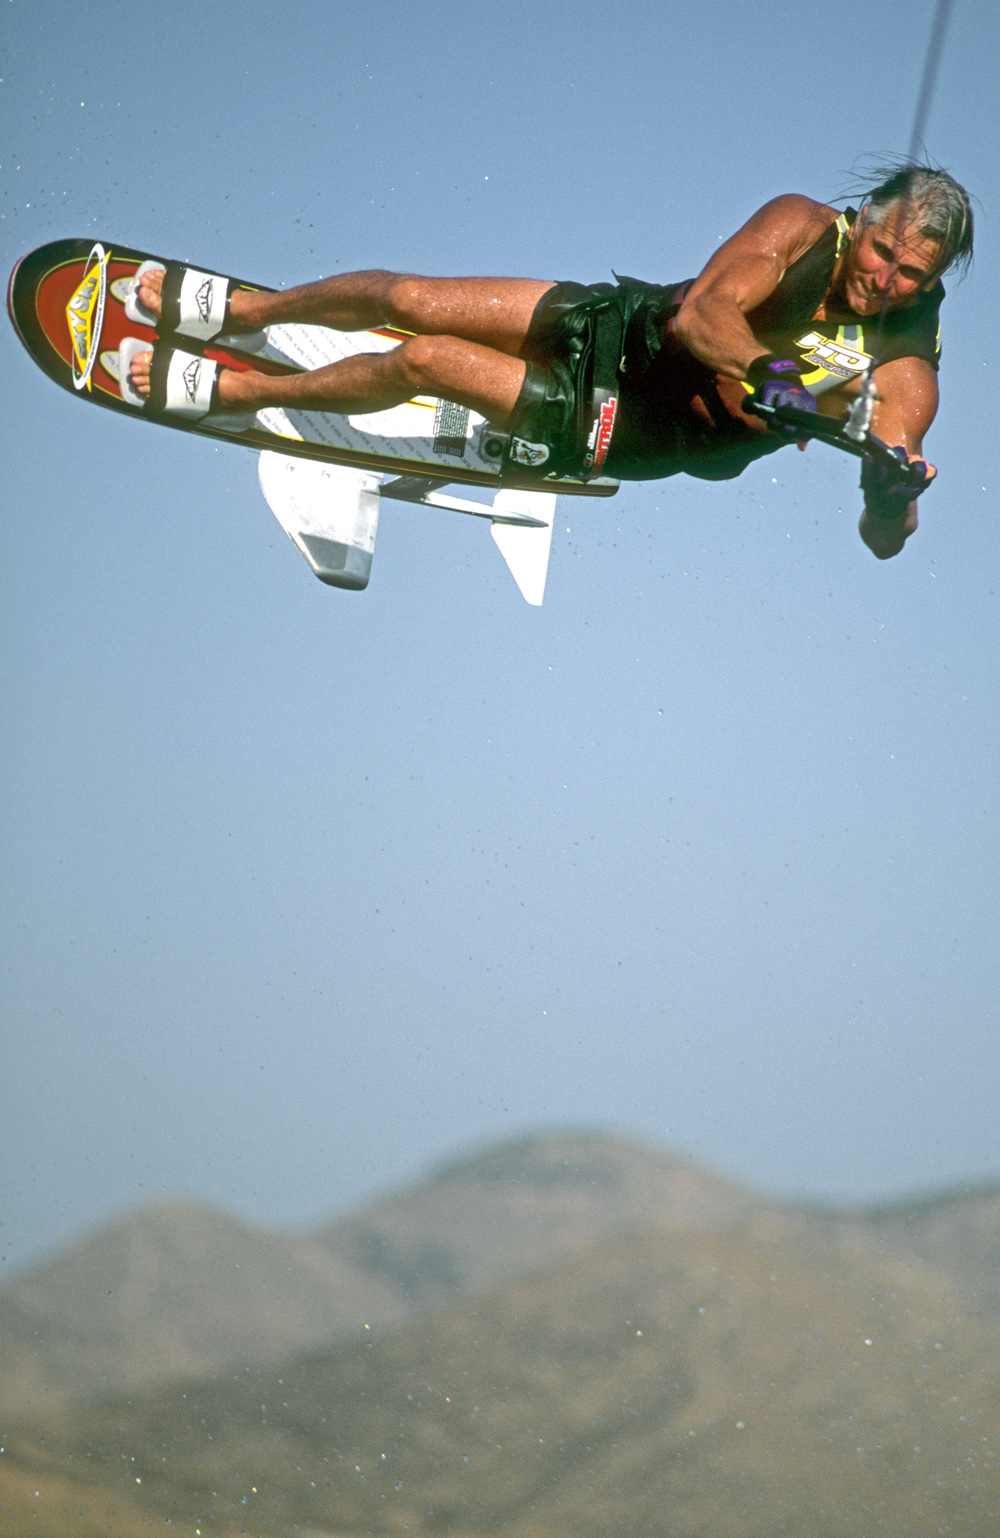 adventures-water-skiing-hydrofoiling-2000-mike-murphy-sky-ski-back-roll-elsinore